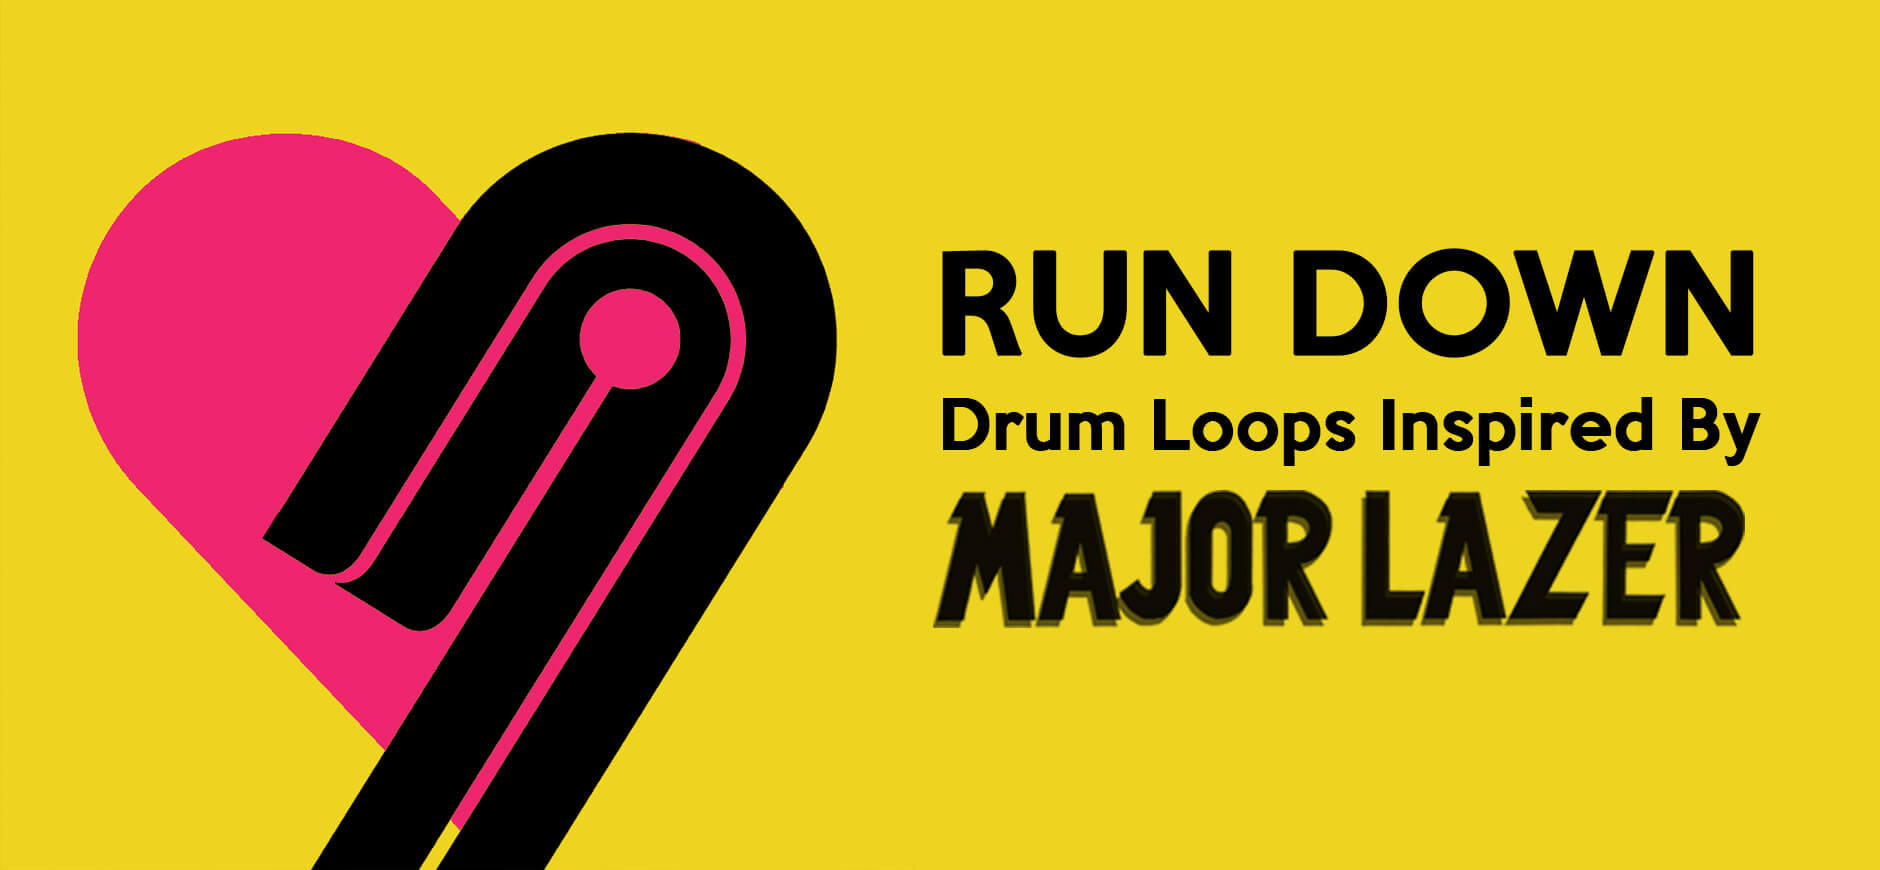 Run Up Drum Loops Inspired by Major Lazer